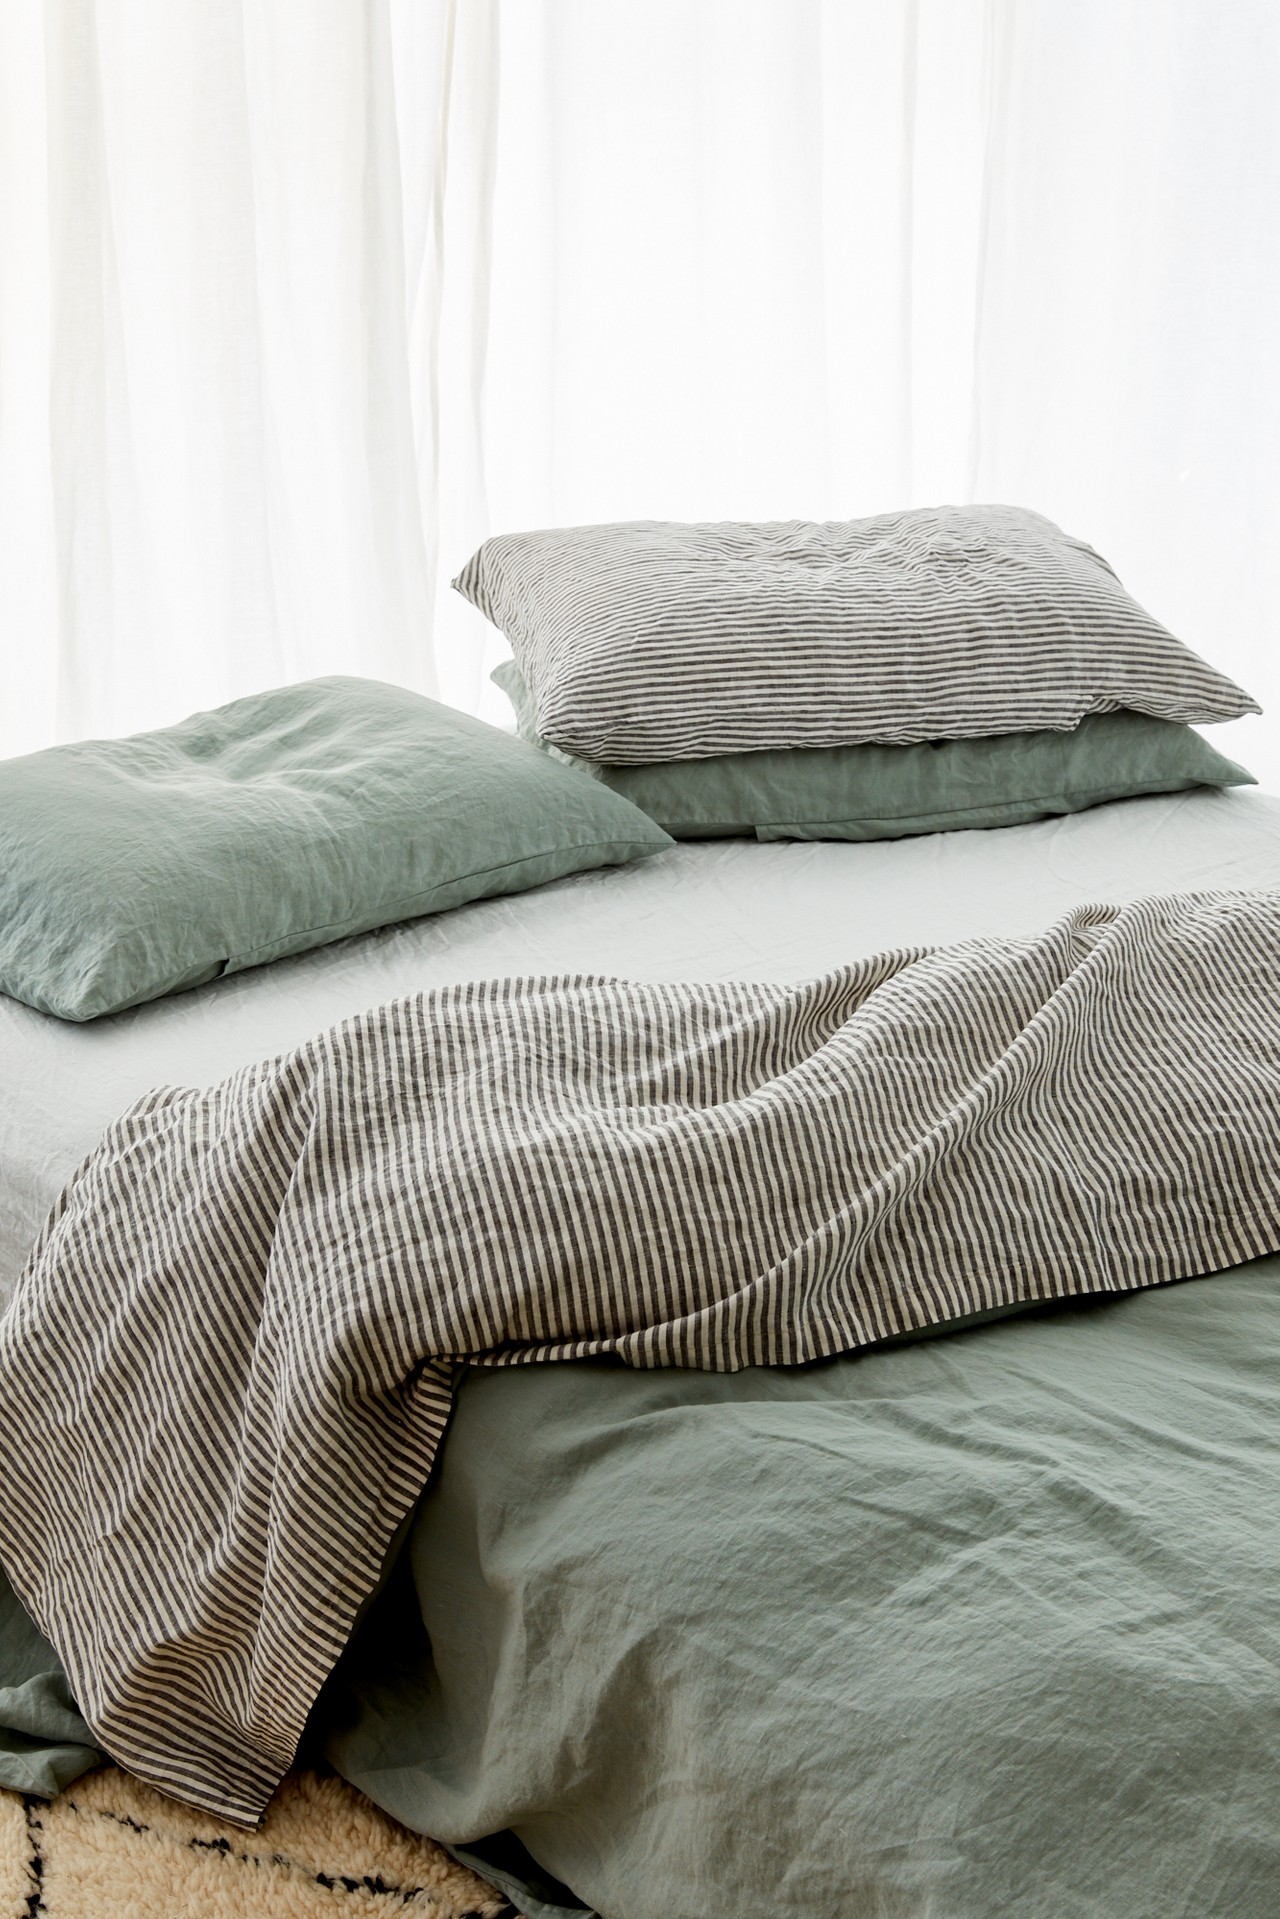 Launching 08 08 19 Soft And Calming Sage Is The Perfect Subtle Hue Of Green For Any Room Incredibly Dive Bedroom Interior Bedroom Inspirations Bedroom Green